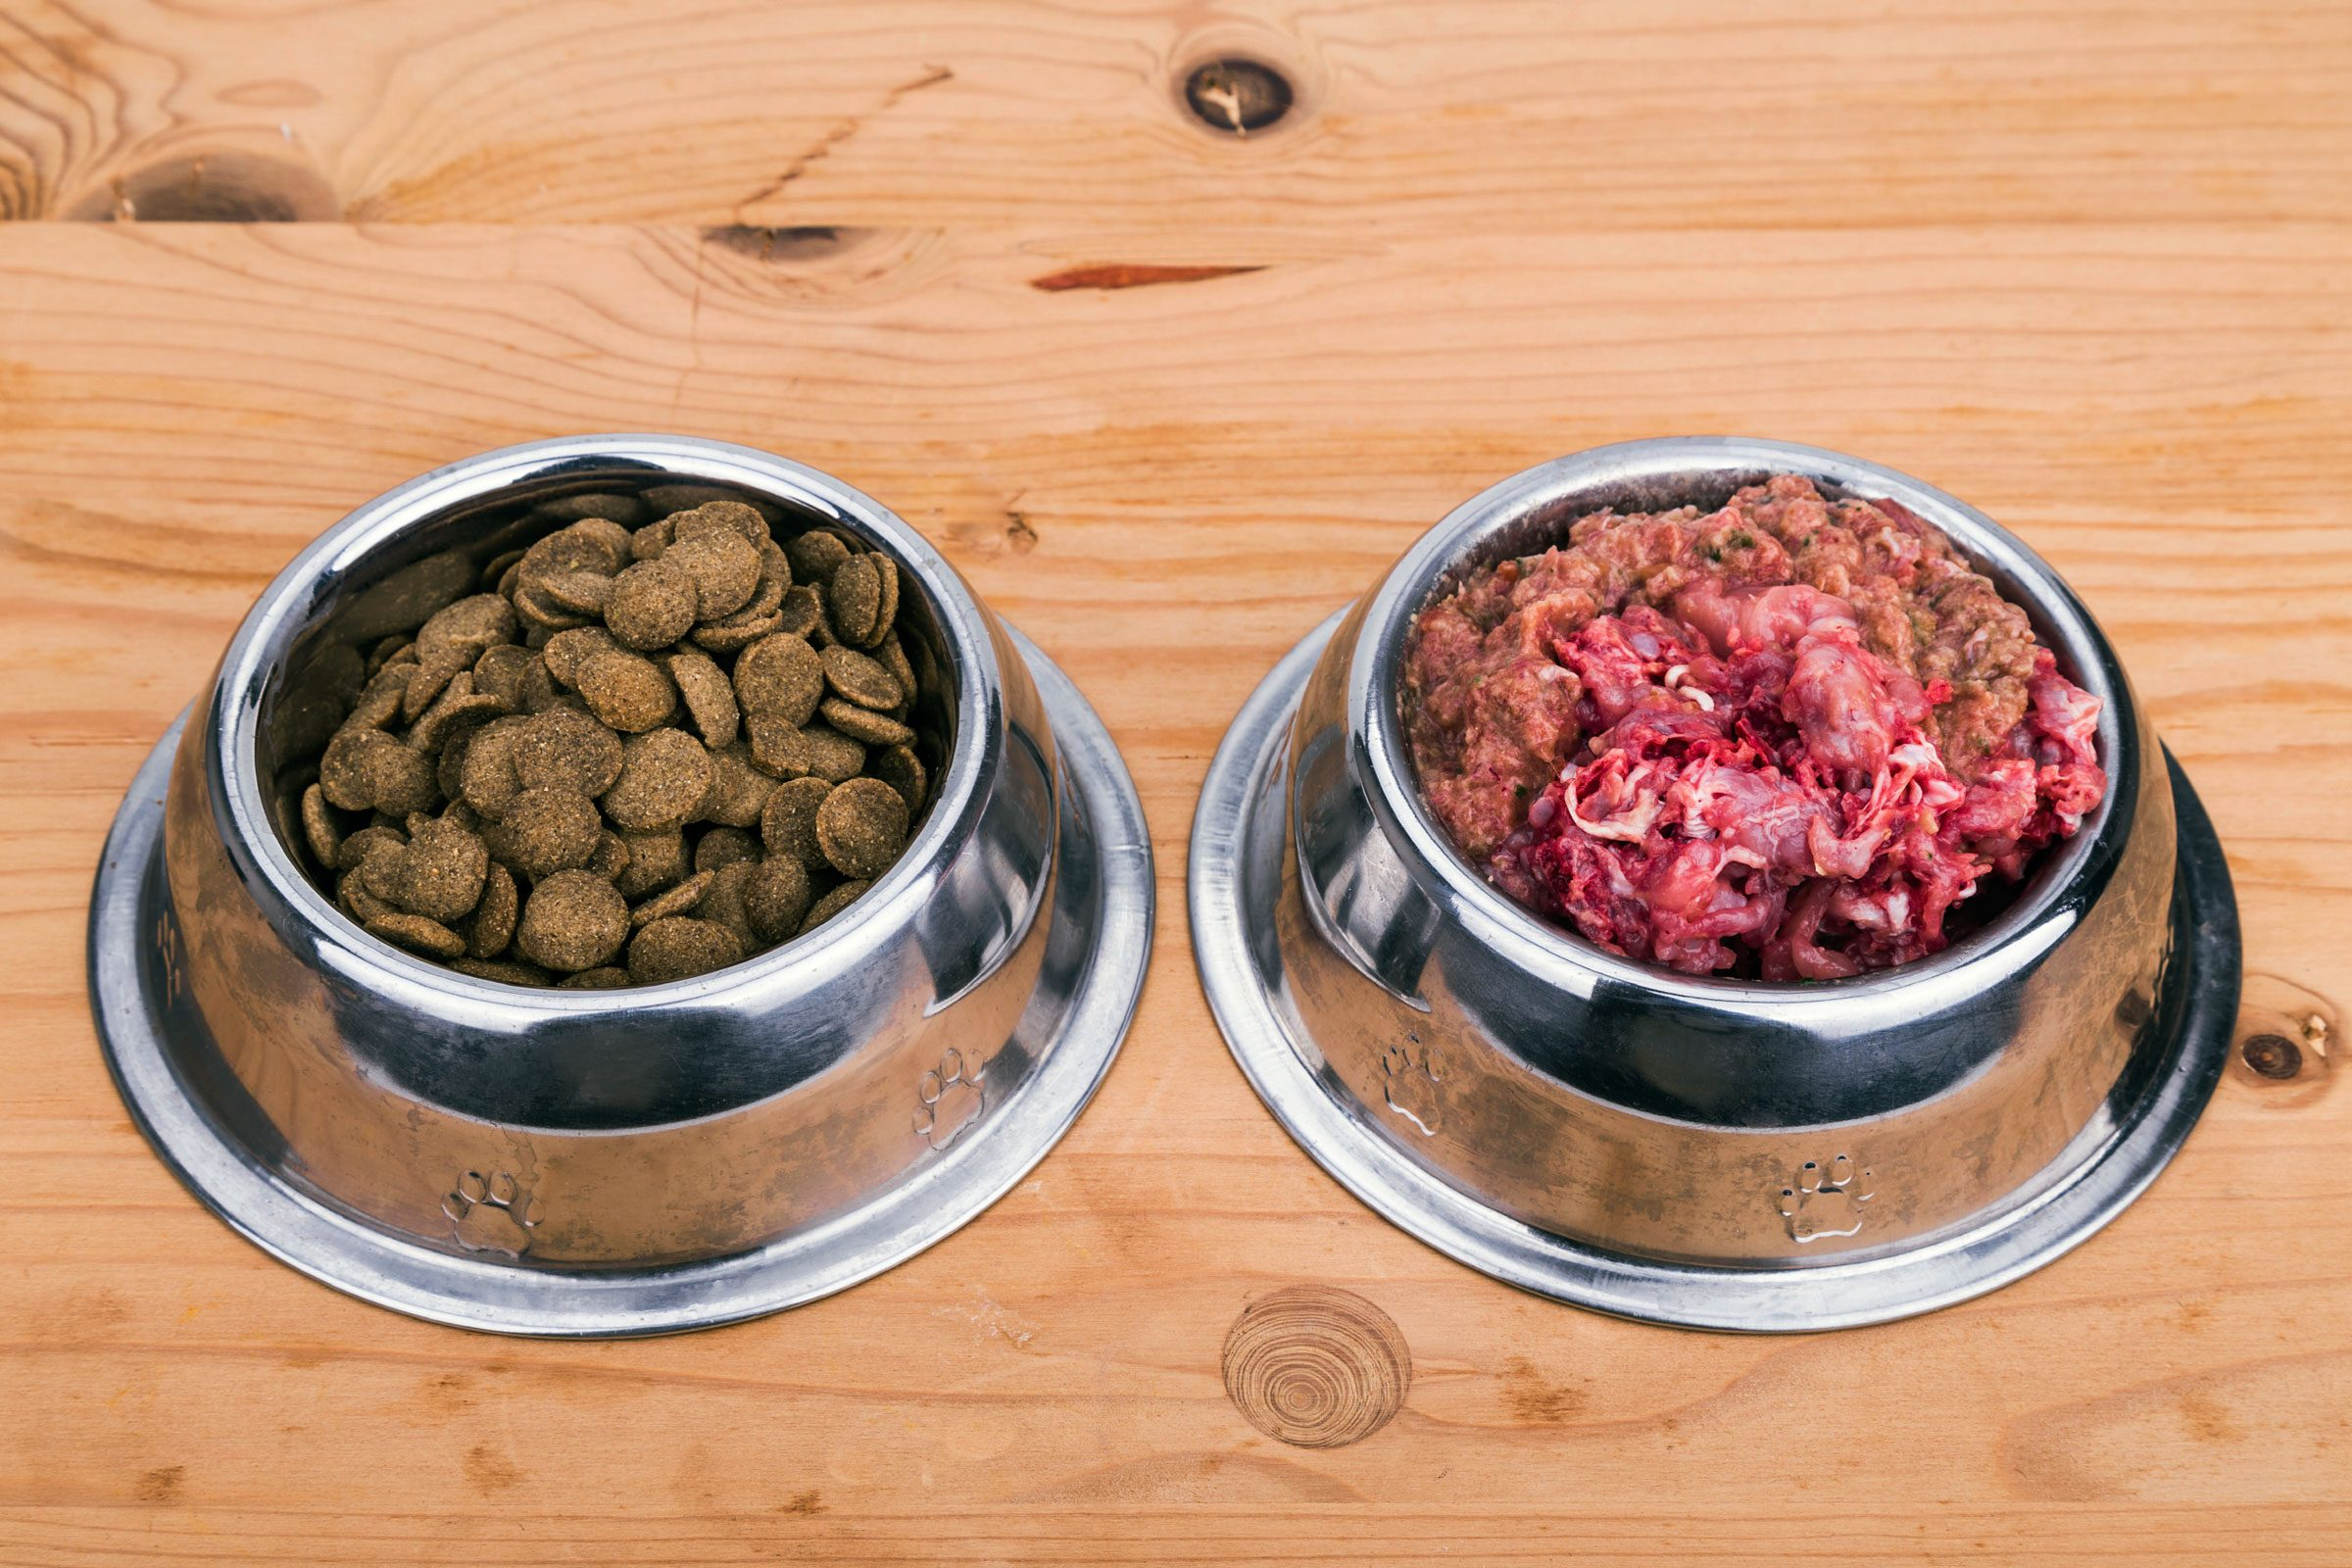 Don't feed your pet a raw-food diet